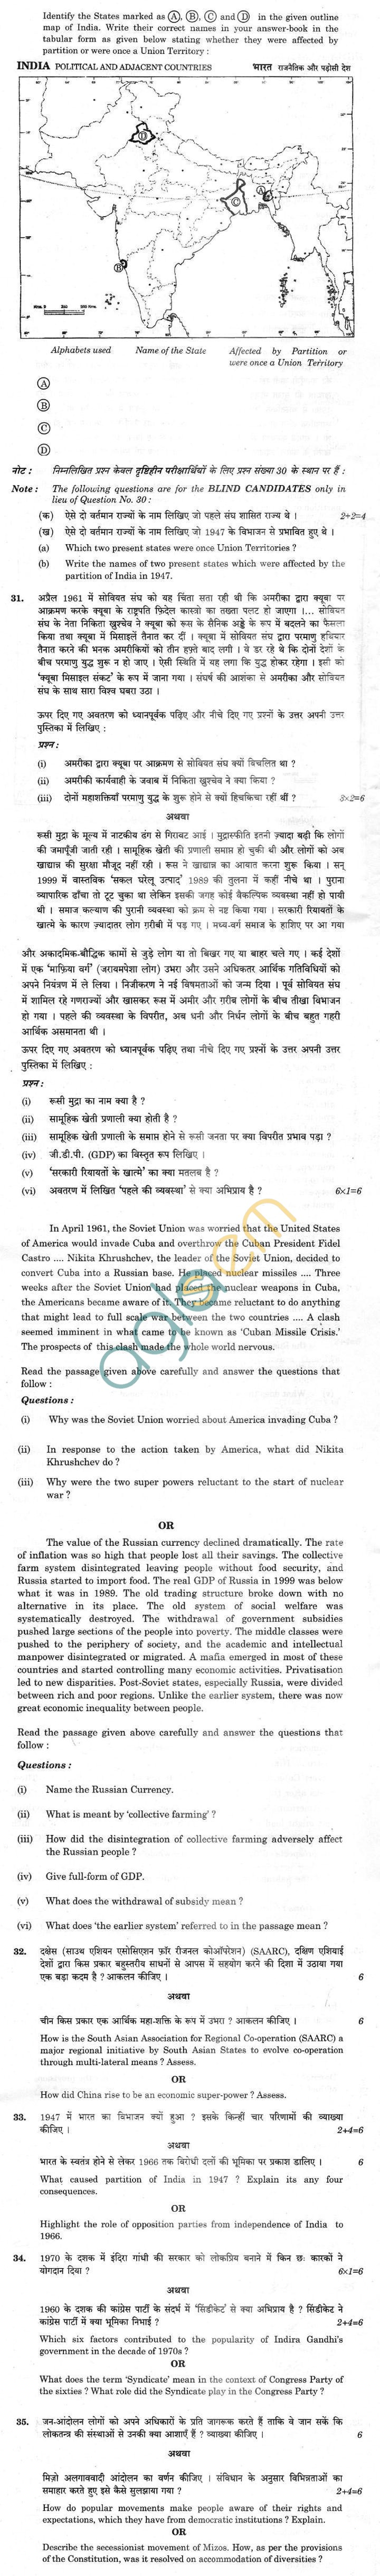 CBSE Compartment Exam 2013 Class XII Question Paper - Political Science